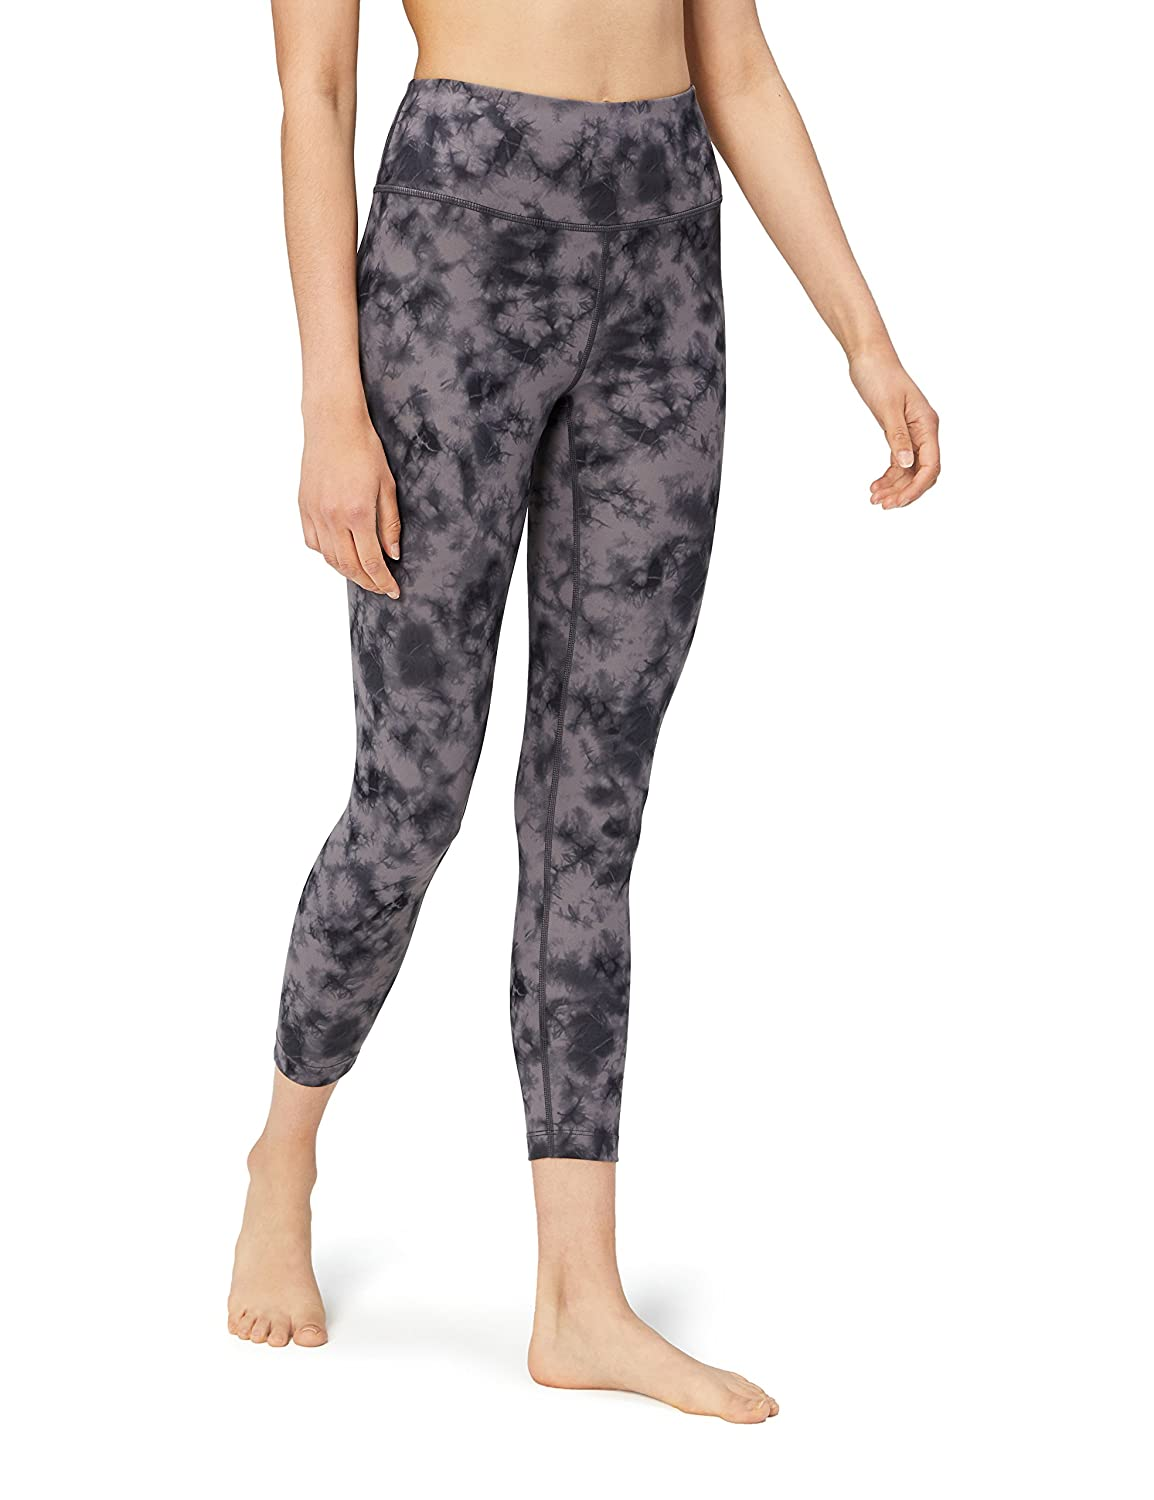 Core 10 Womens Standard Spectrum High Waist Yoga 7/8 Crop Legging -24 WAI18022_B